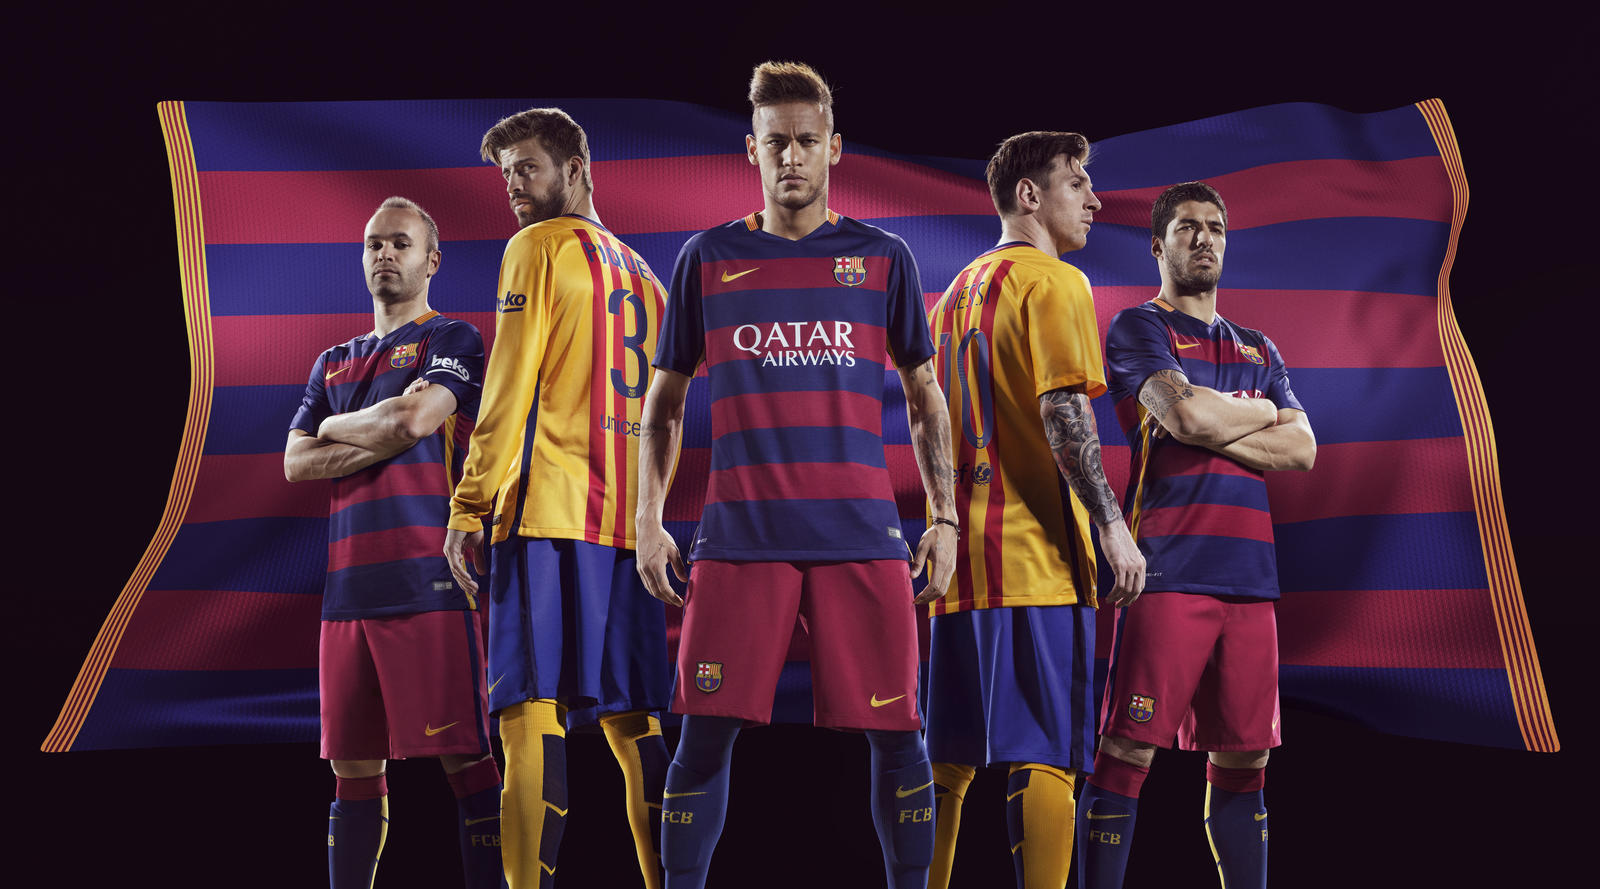 Fcb Fa15 Kit Launch May2015 Mixed Master Hrf2%20 Hi